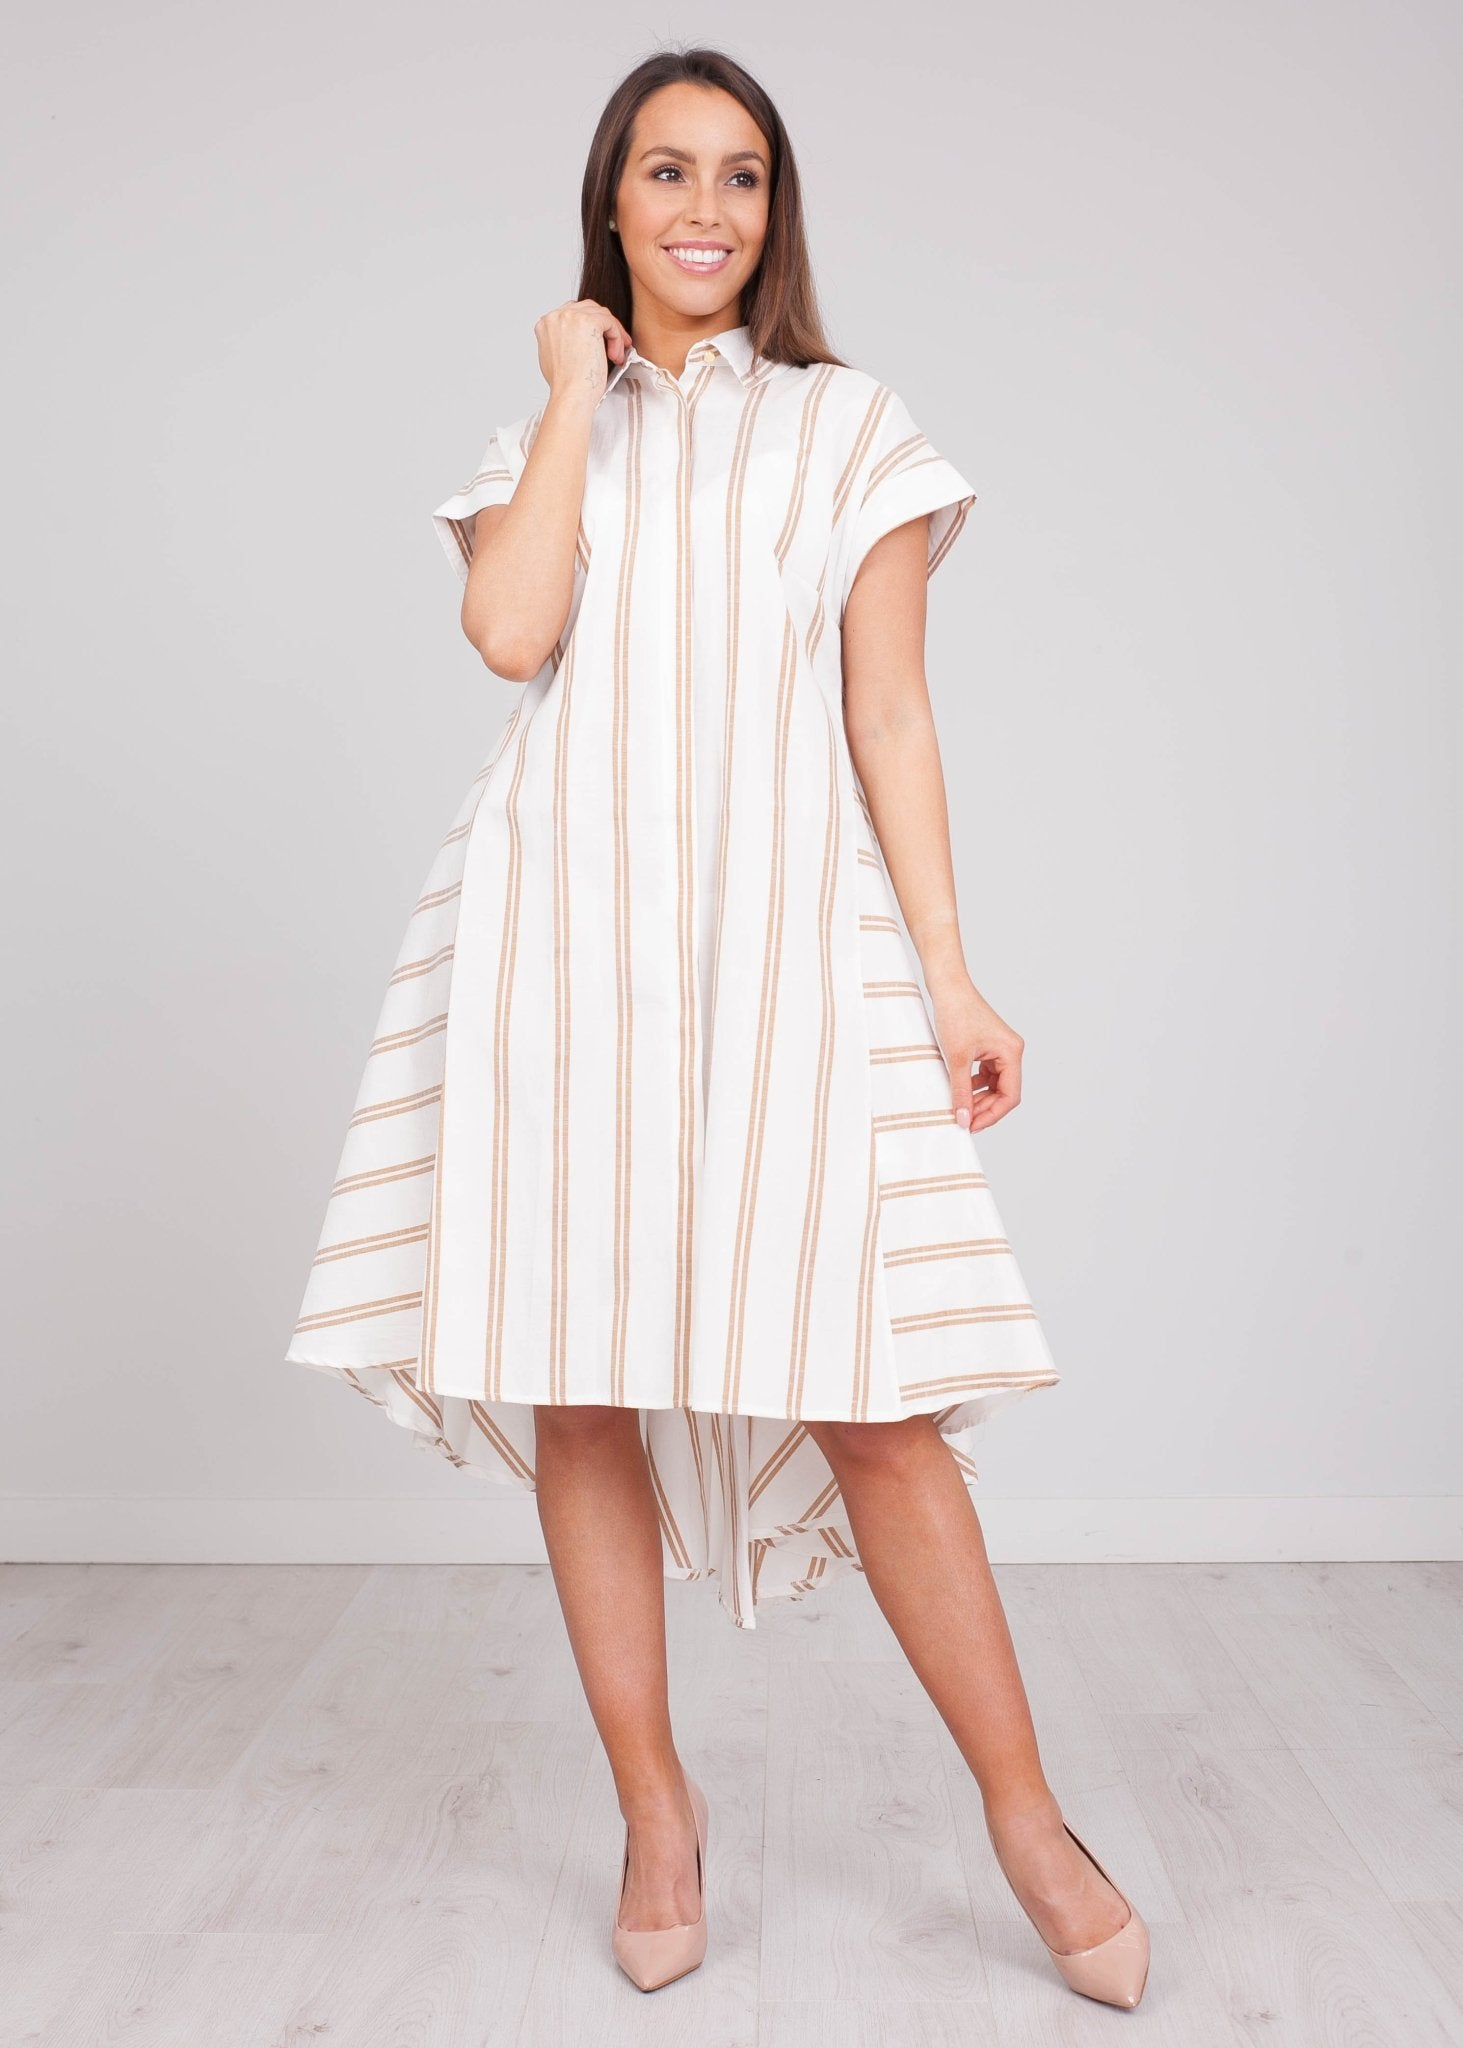 Sophia Cream & Tan Hi-Low Dress - The Walk in Wardrobe